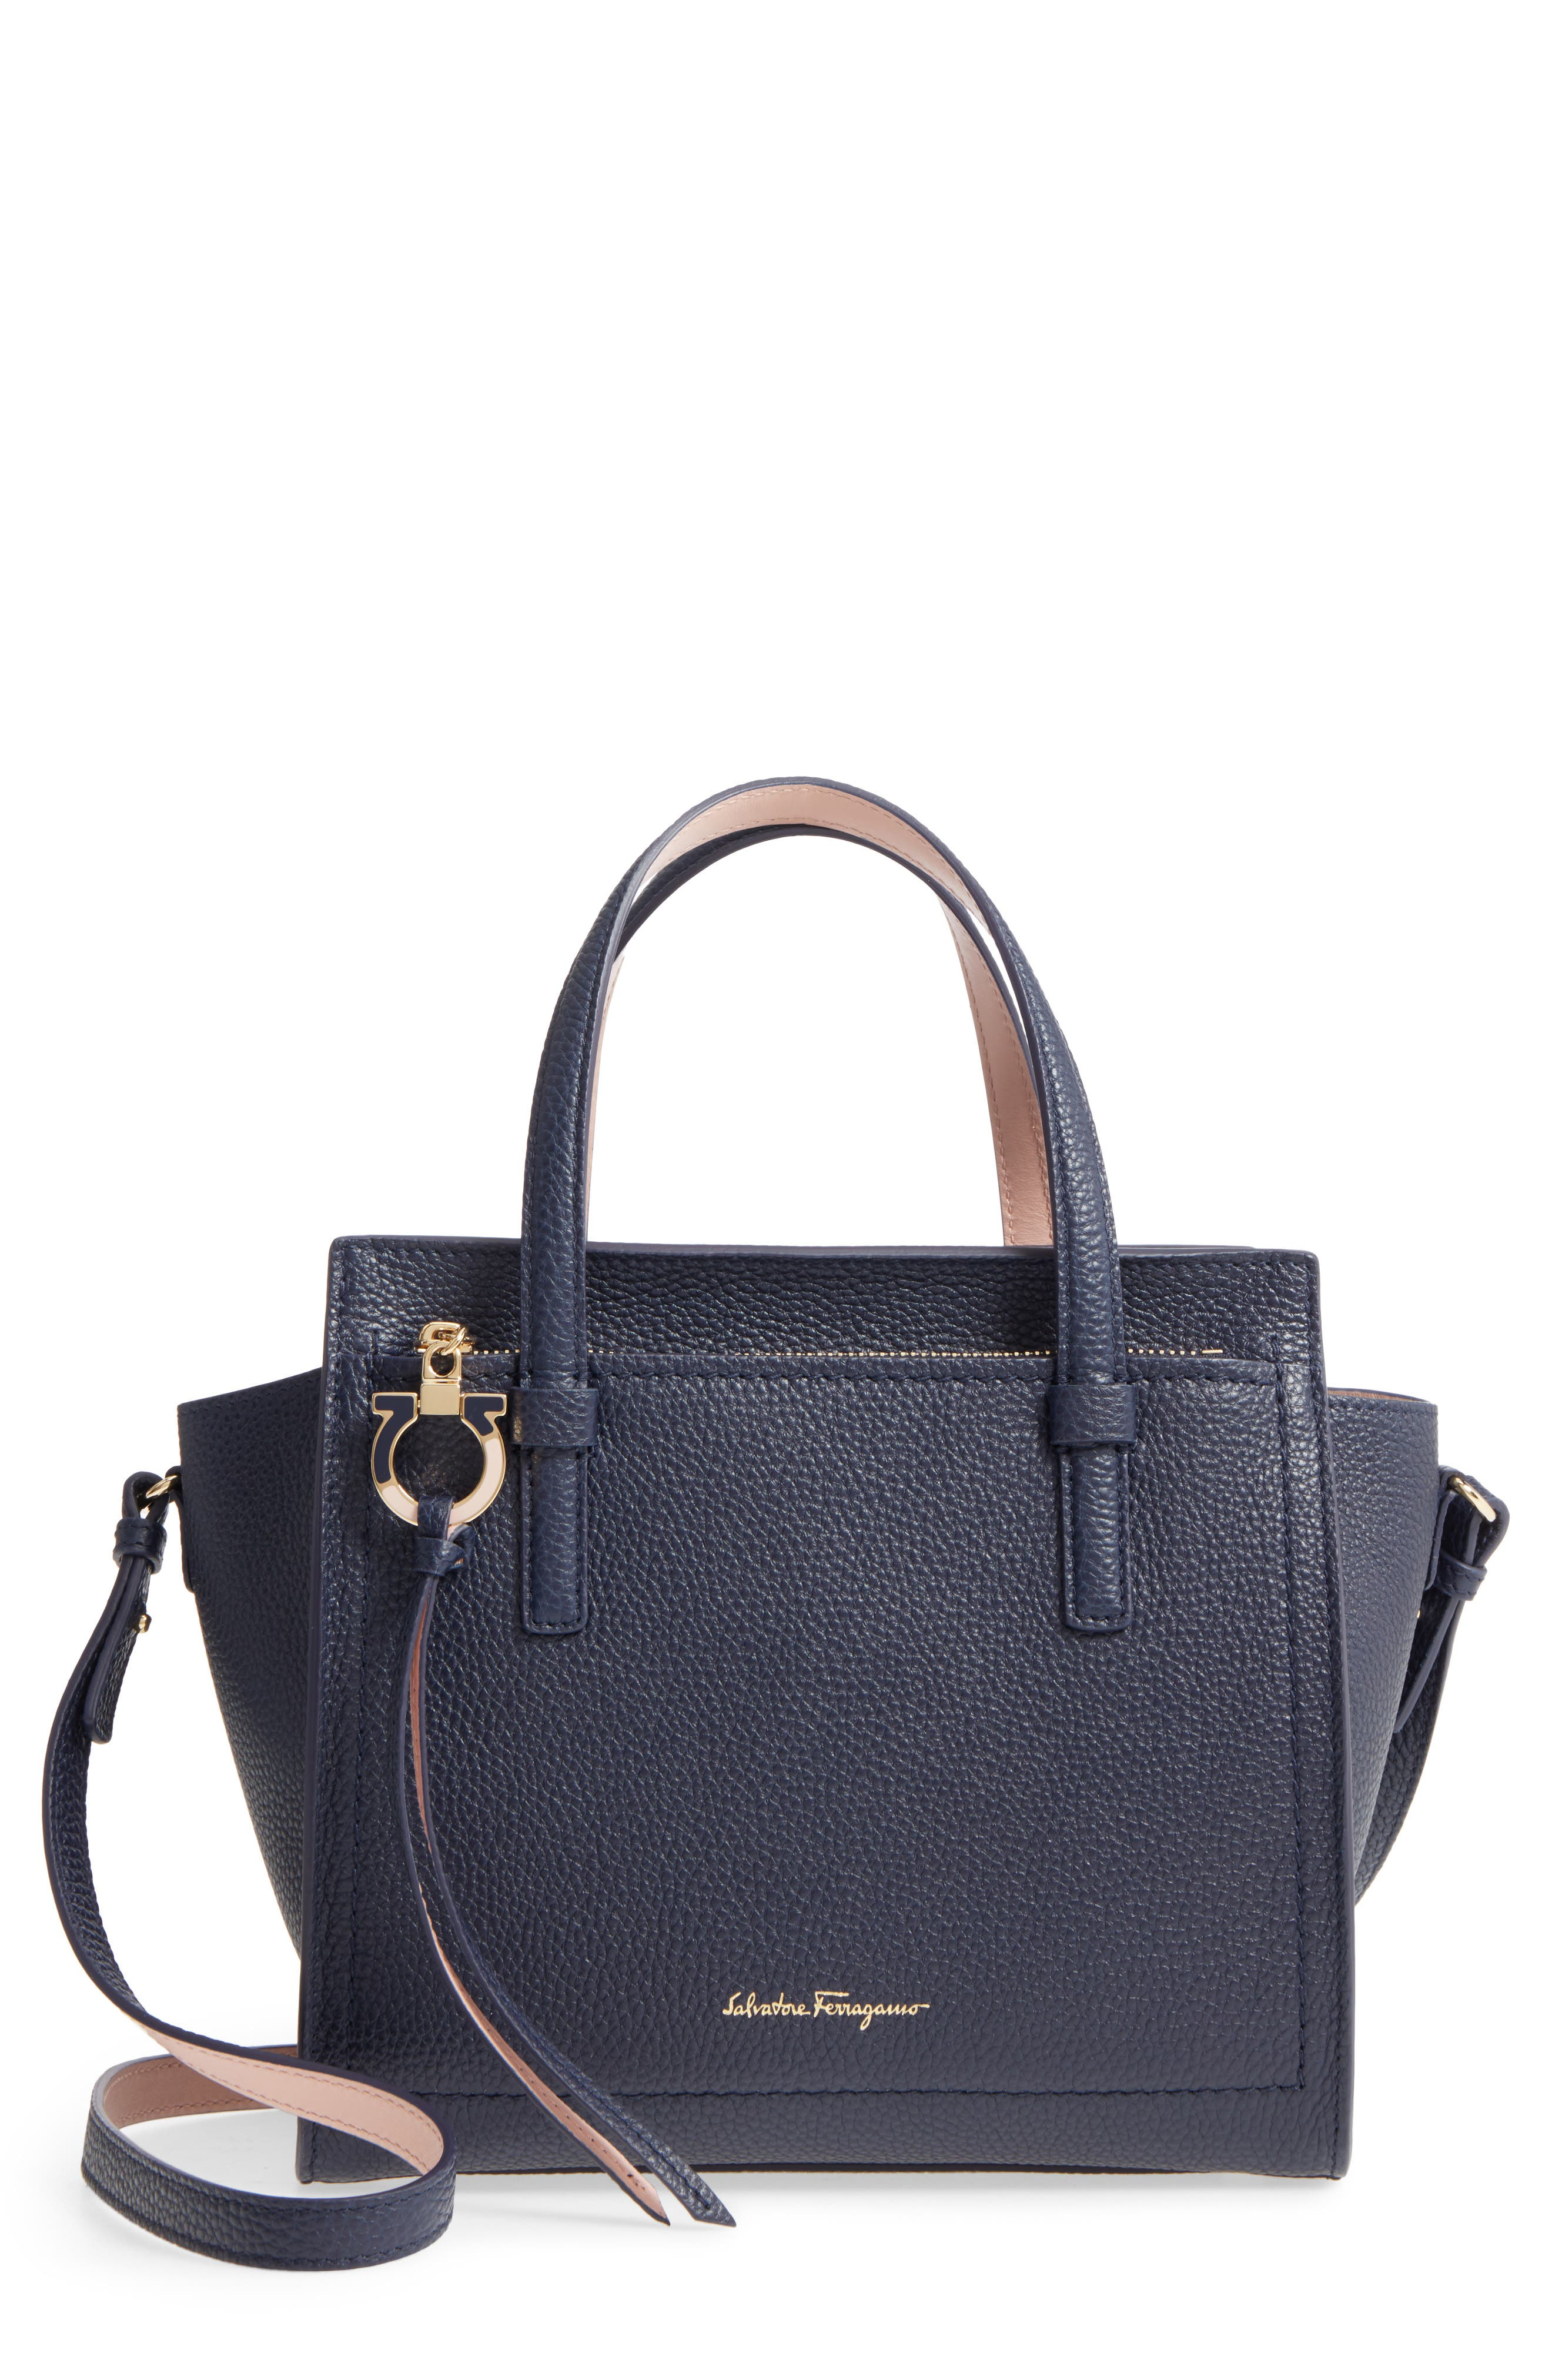 Small Amy Bicolor Leather Tote,                             Main thumbnail 1, color,                             292